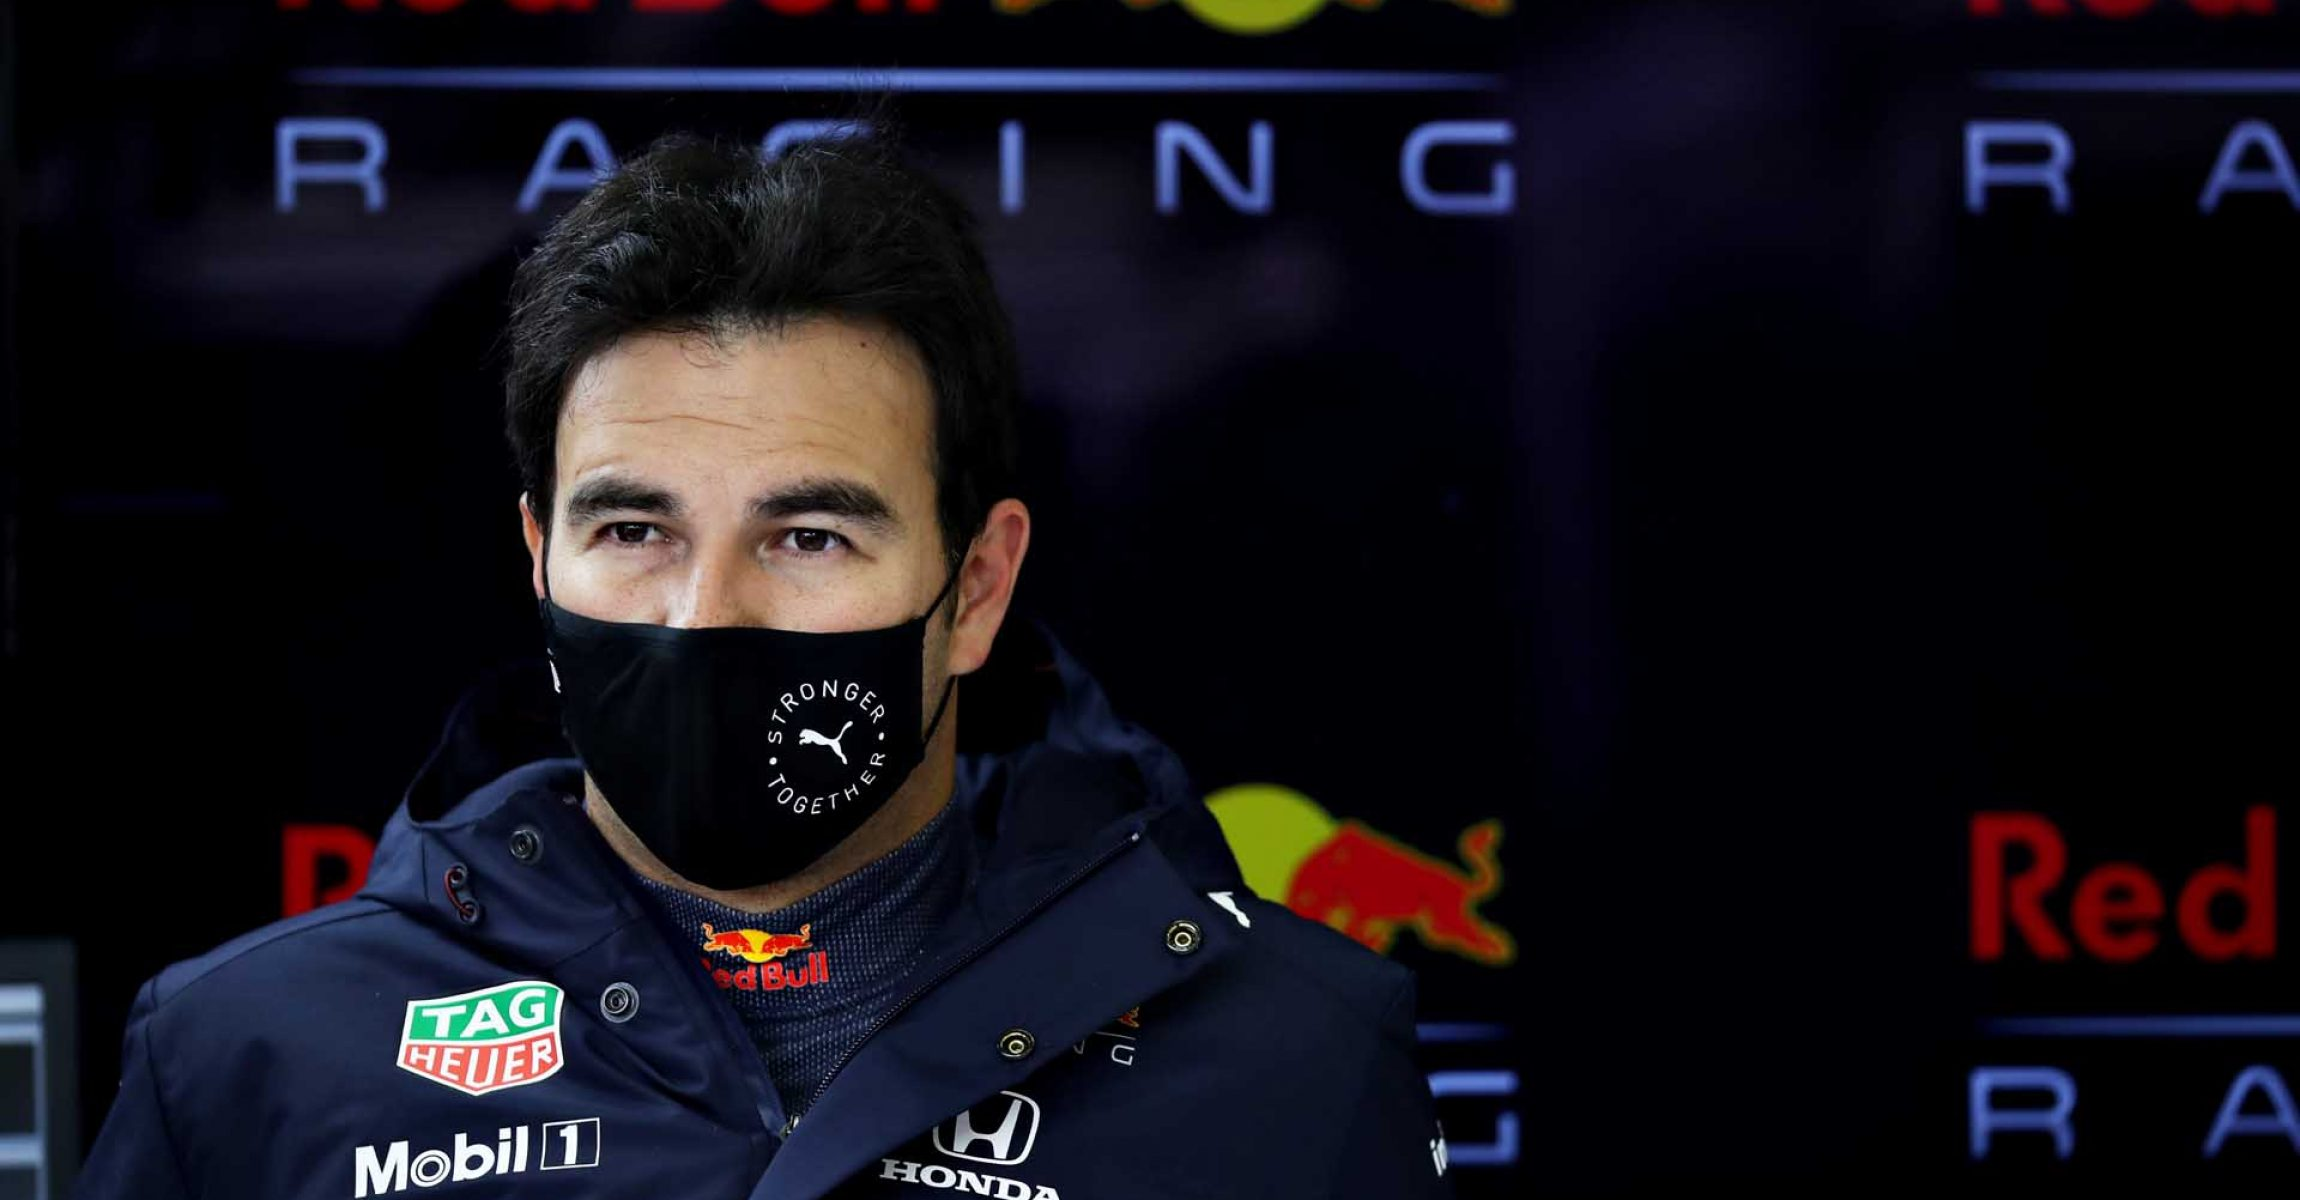 NORTHAMPTON, ENGLAND - FEBRUARY 23: Sergio Perez of Mexico and Red Bull Racing prepares to drive in the garage during the Red Bull Racing filming day at Silverstone on February 23, 2021 in Northampton, England. (Photo by Mark Thompson/Getty Images for Red Bull Racing)